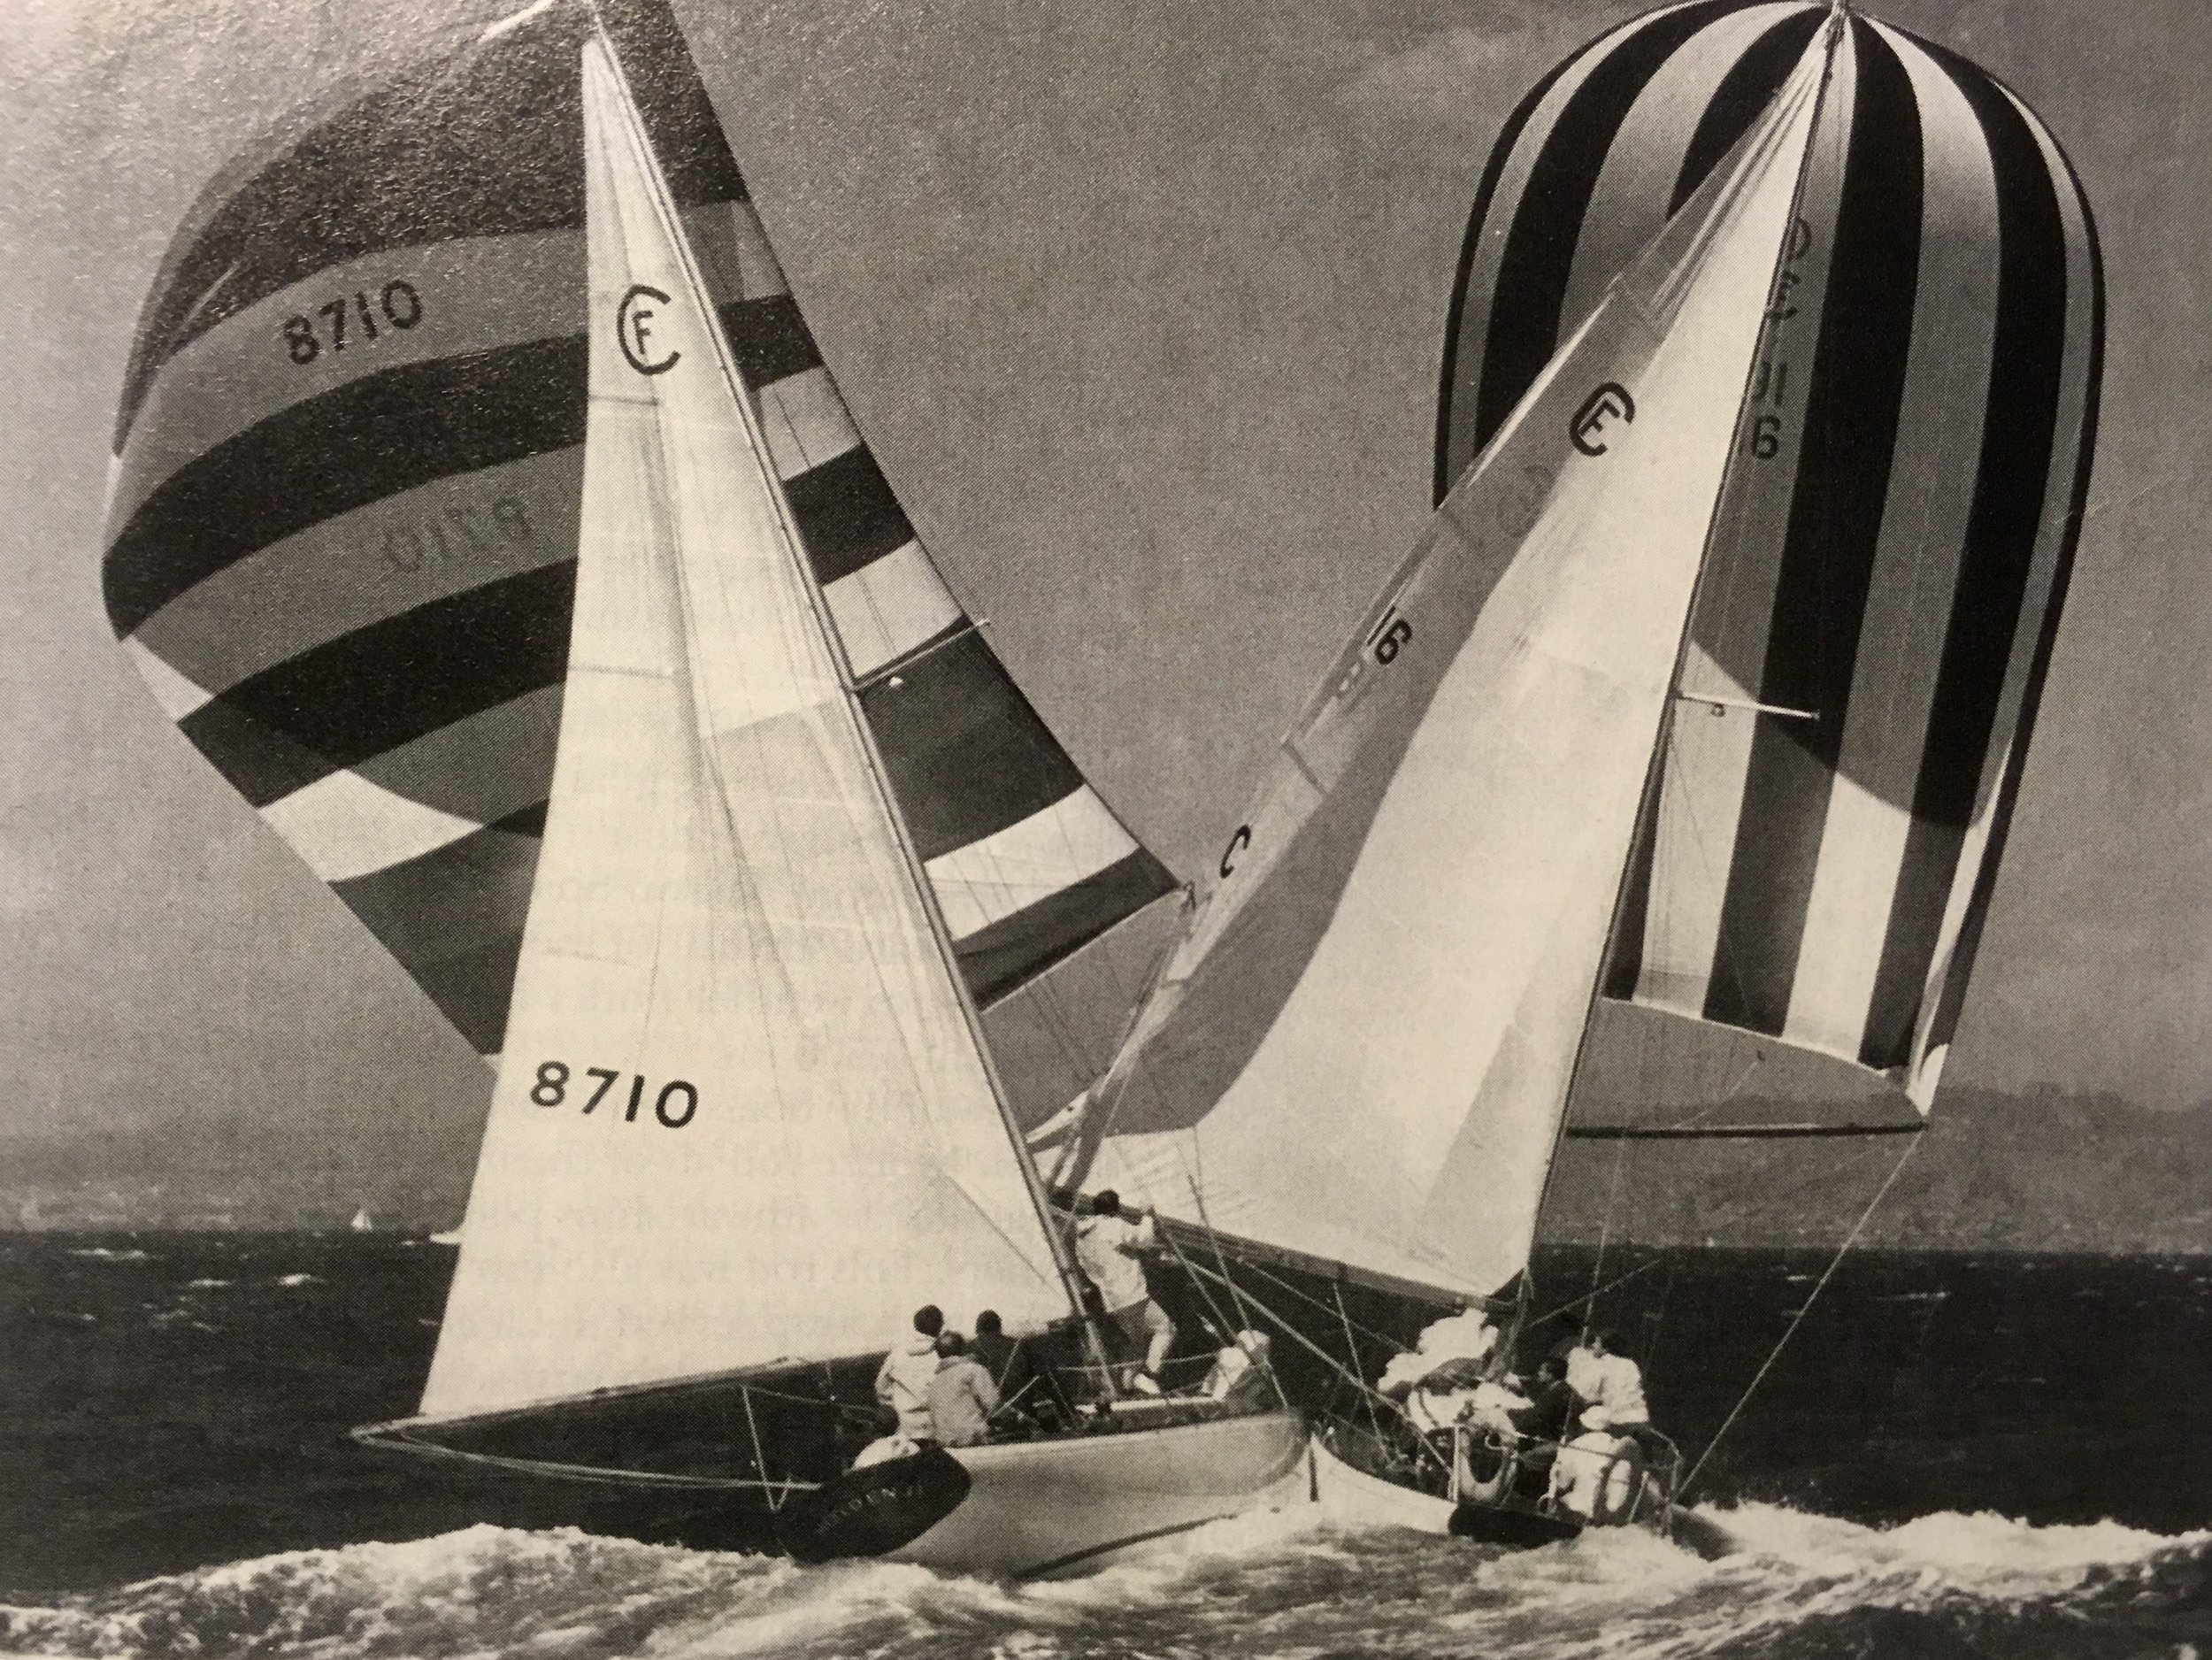 HOYDEN II (8710) and CIRCE (16) all tangled up. Note the masthead spinnakers, compared with the fractional rig. Once declared a development class in the mid-1950s, the Clippers were open to aggressive innovations in the search for speed. in 1964, CIRCE became the first to adopt the masthead rig, but others quickly followed suit.